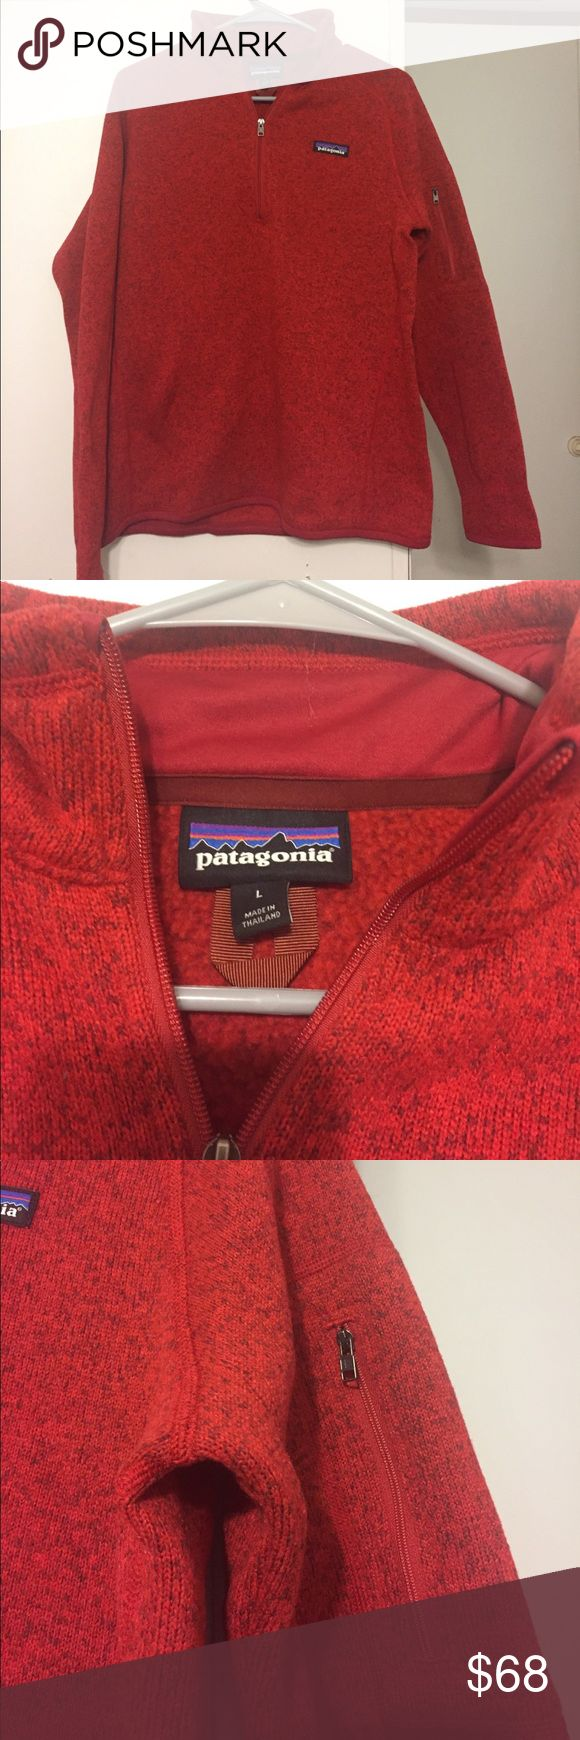 Patagonia Better Sweater Quarter Zip This pullover is absolutely gorgeous and has never been worn or washed. I would keep it but it does not fit me correctly. Patagonia Jackets & Coats